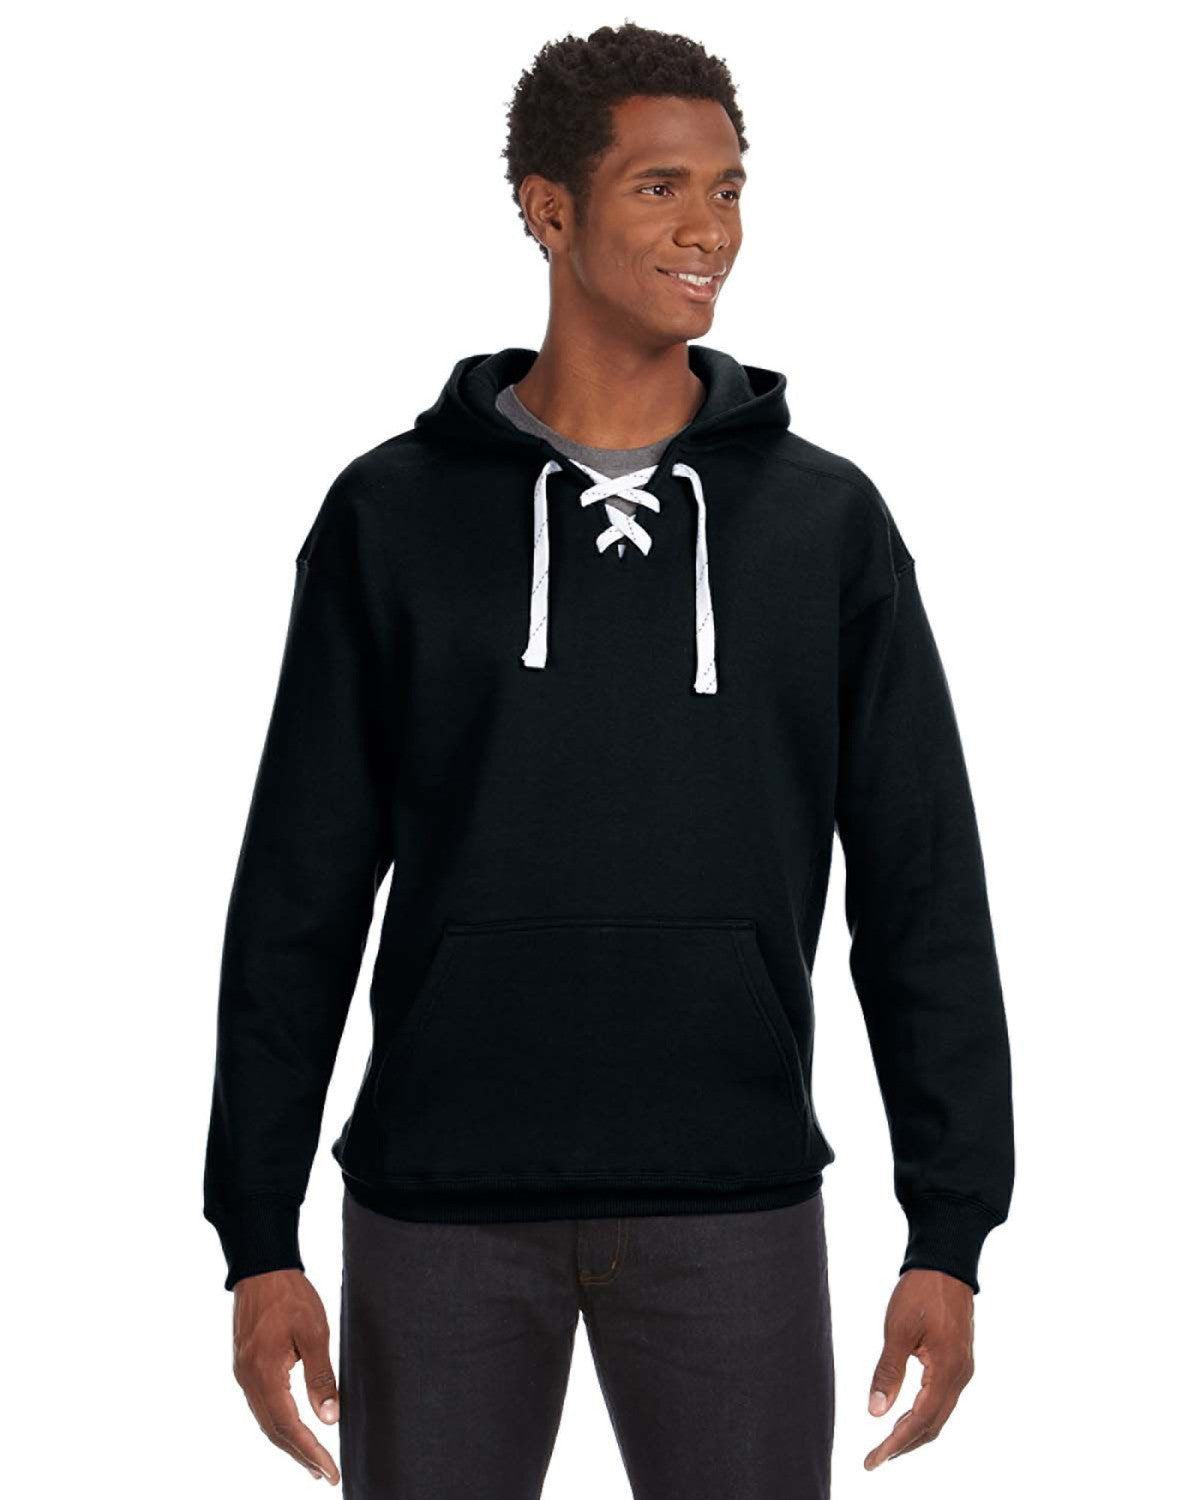 Sport Lace Hooded Sweatshirt